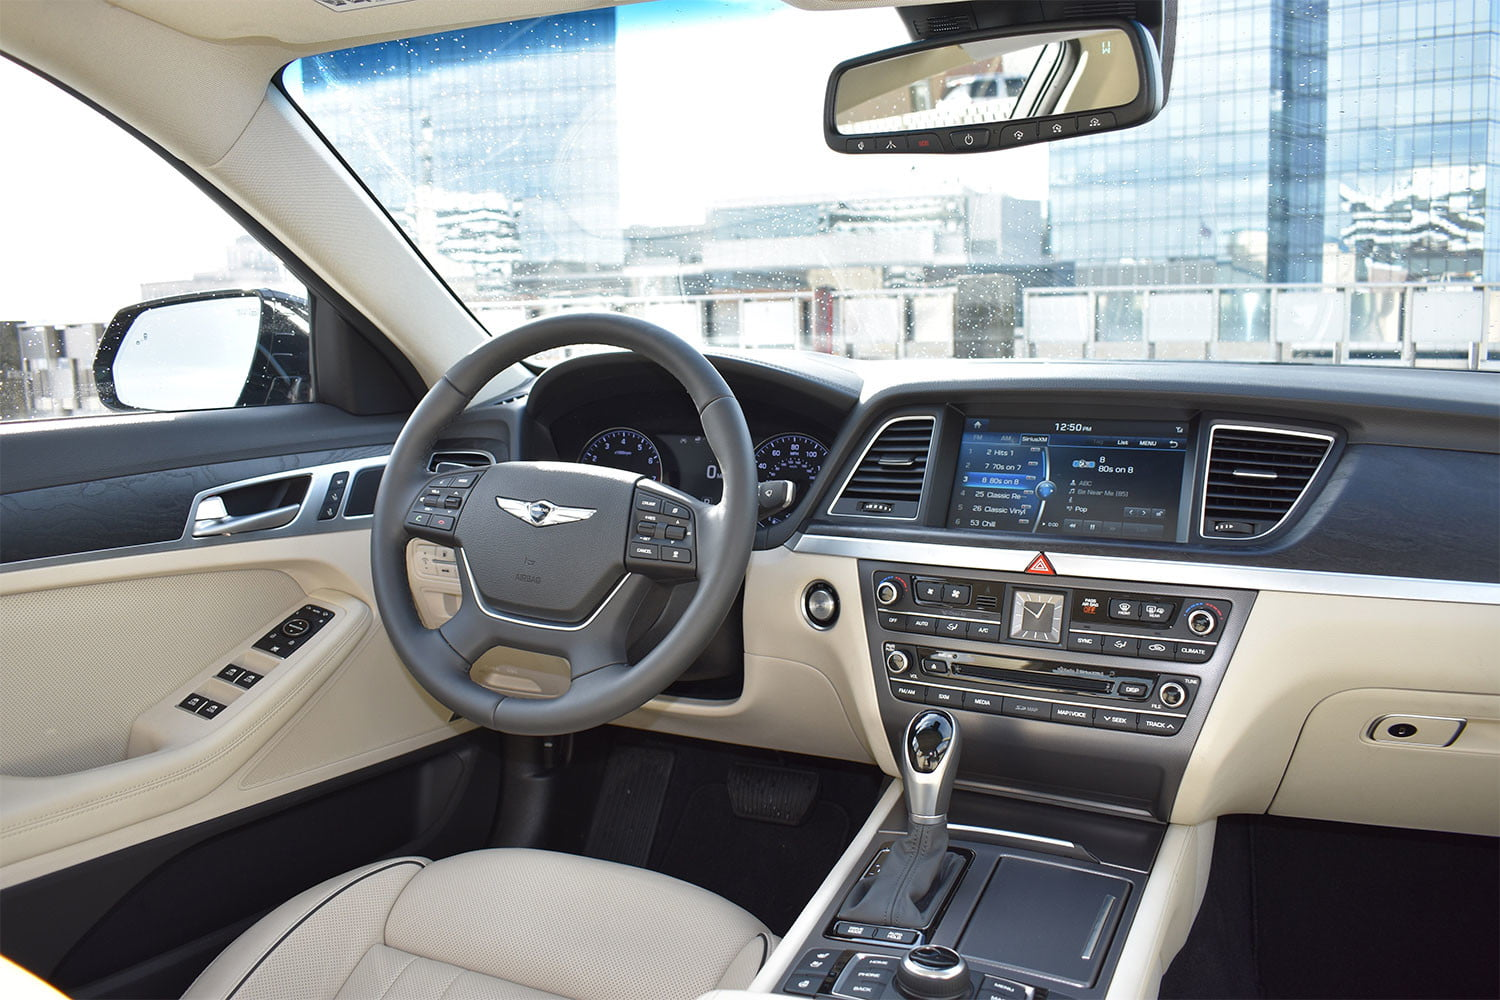 2017 genesis g80 3 8 awd review digital trends. Black Bedroom Furniture Sets. Home Design Ideas